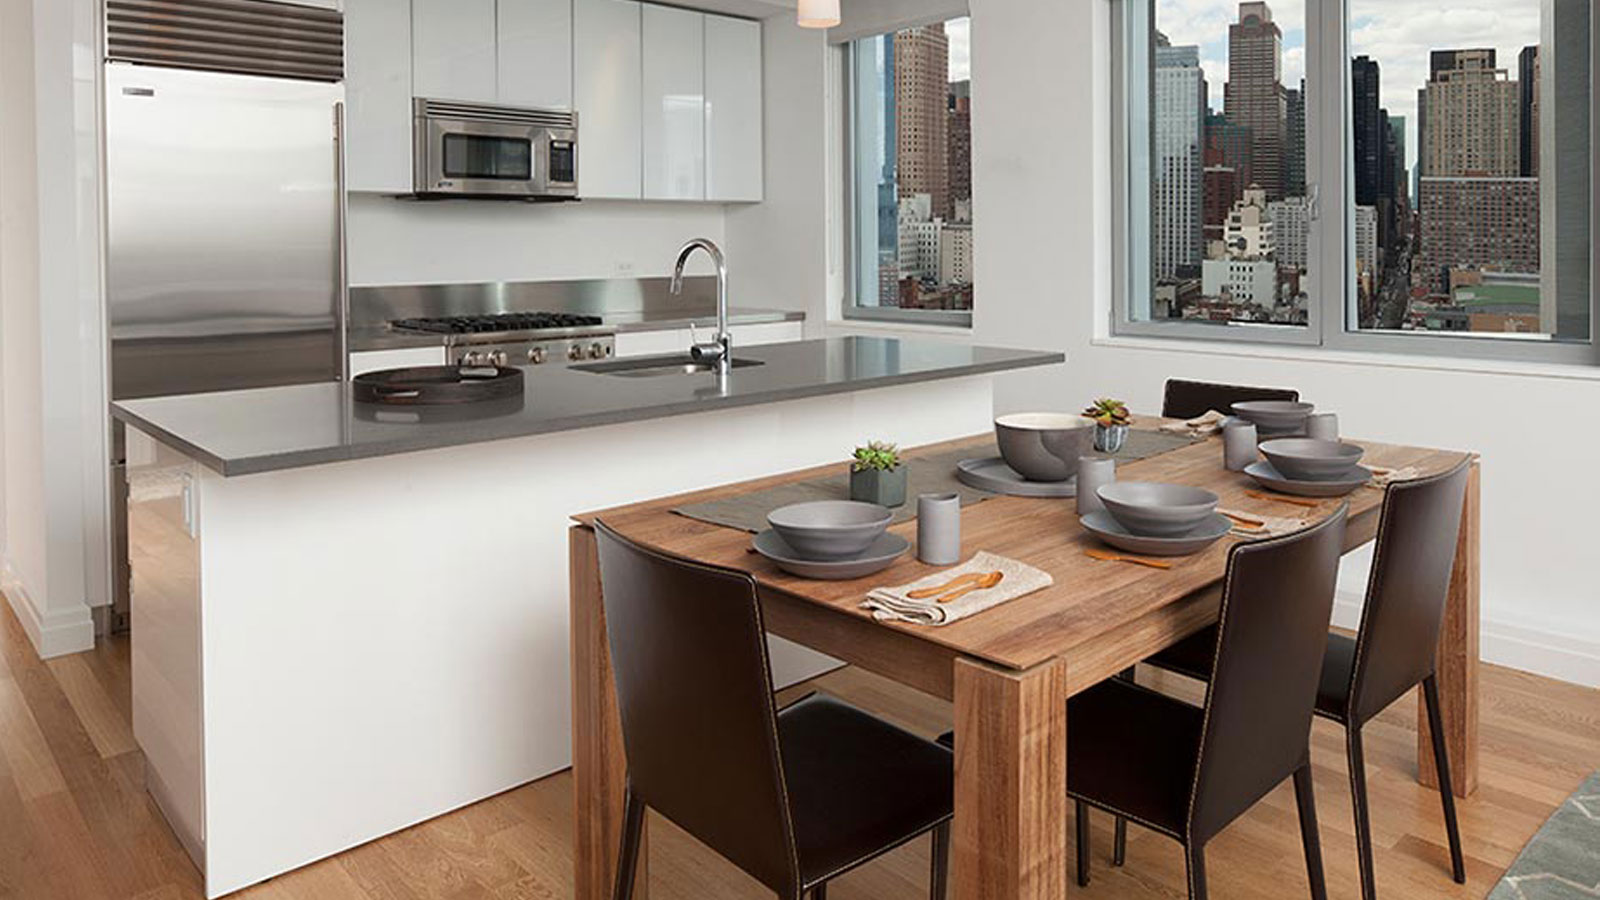 Instrata at Mercedes House, 554 West 54th Street